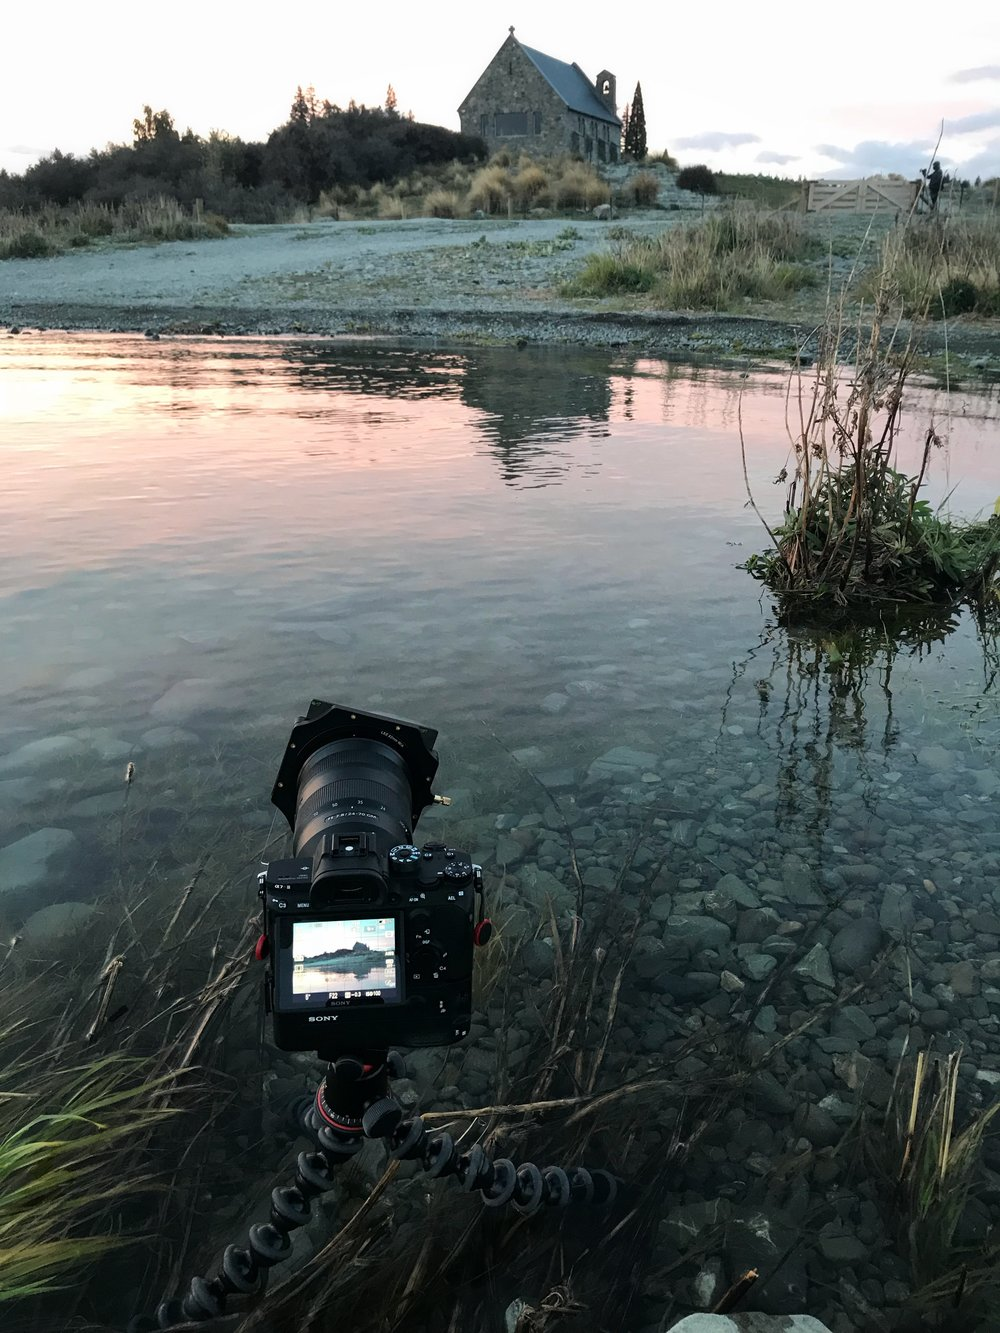 Using the Joby Tripod to Photograph Church of the Good Shephard in New Zealand